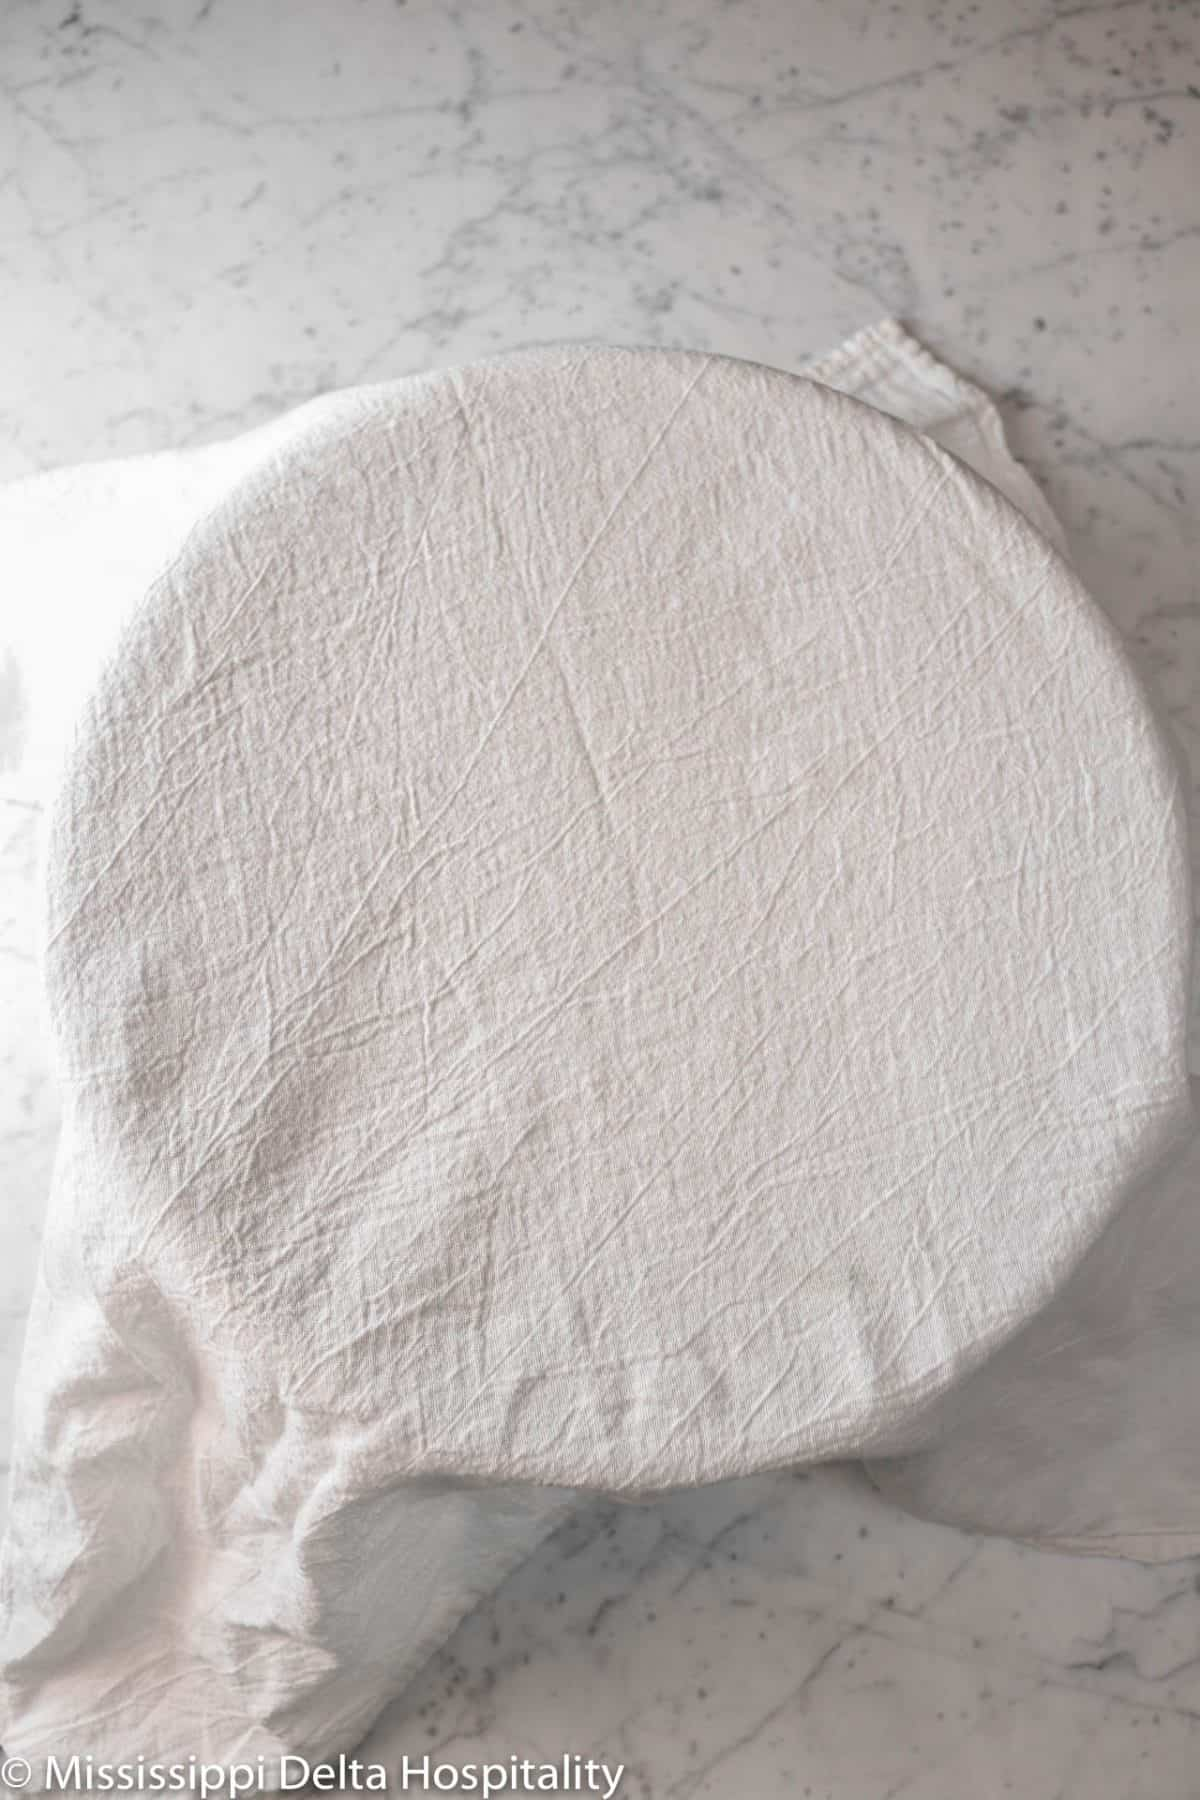 mixture covered with a white towel